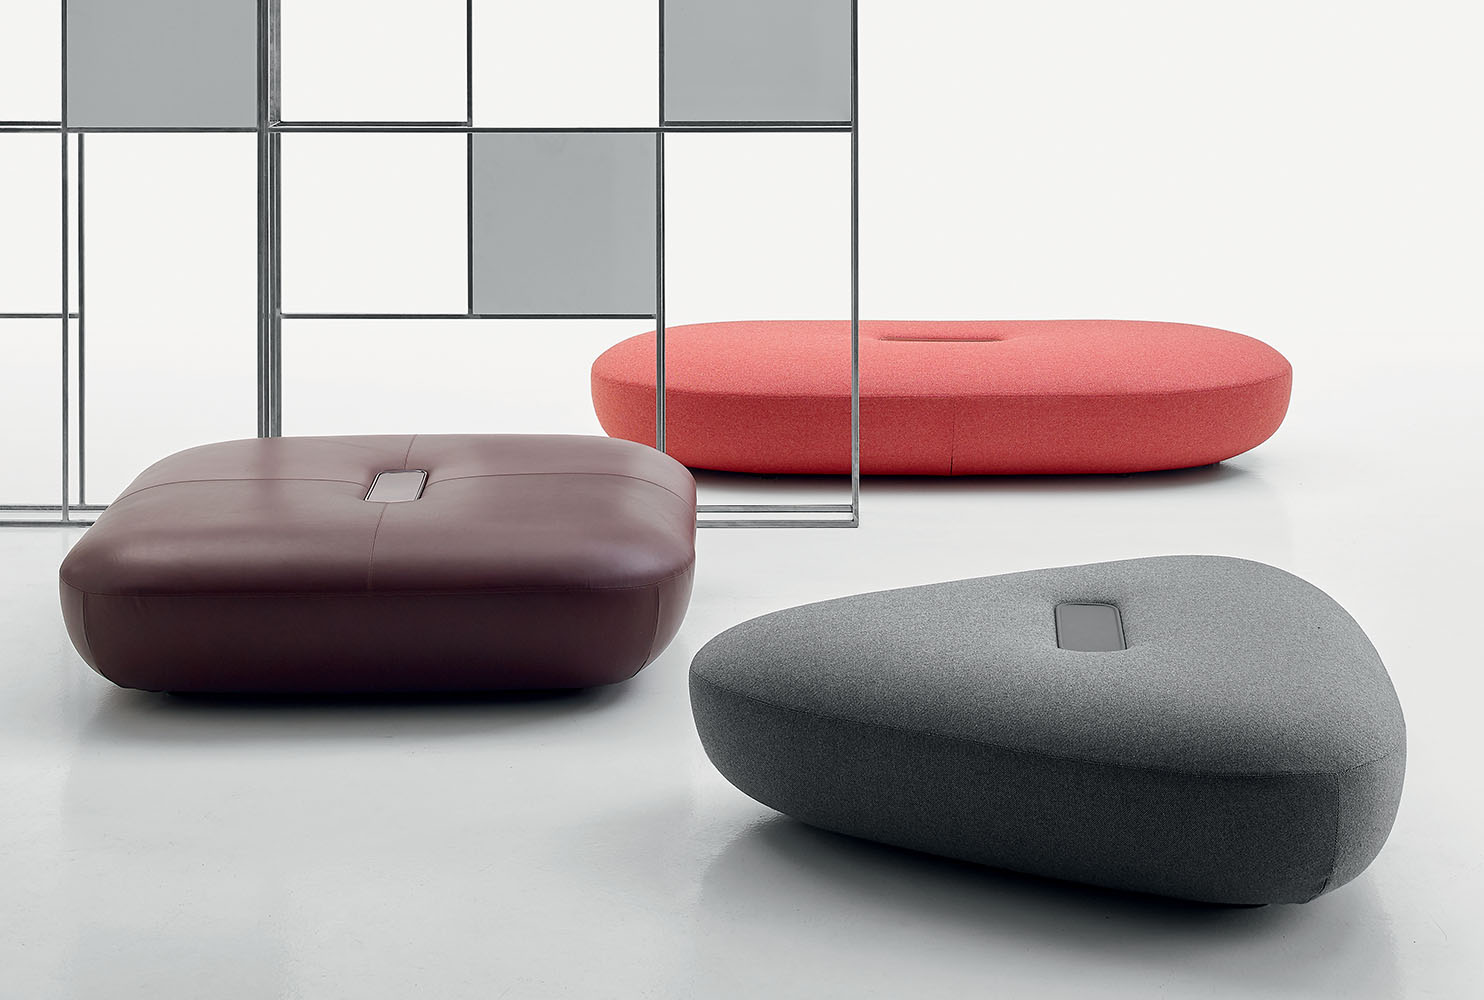 Tabour Ottomans by Doshi Levien for B&B Italia